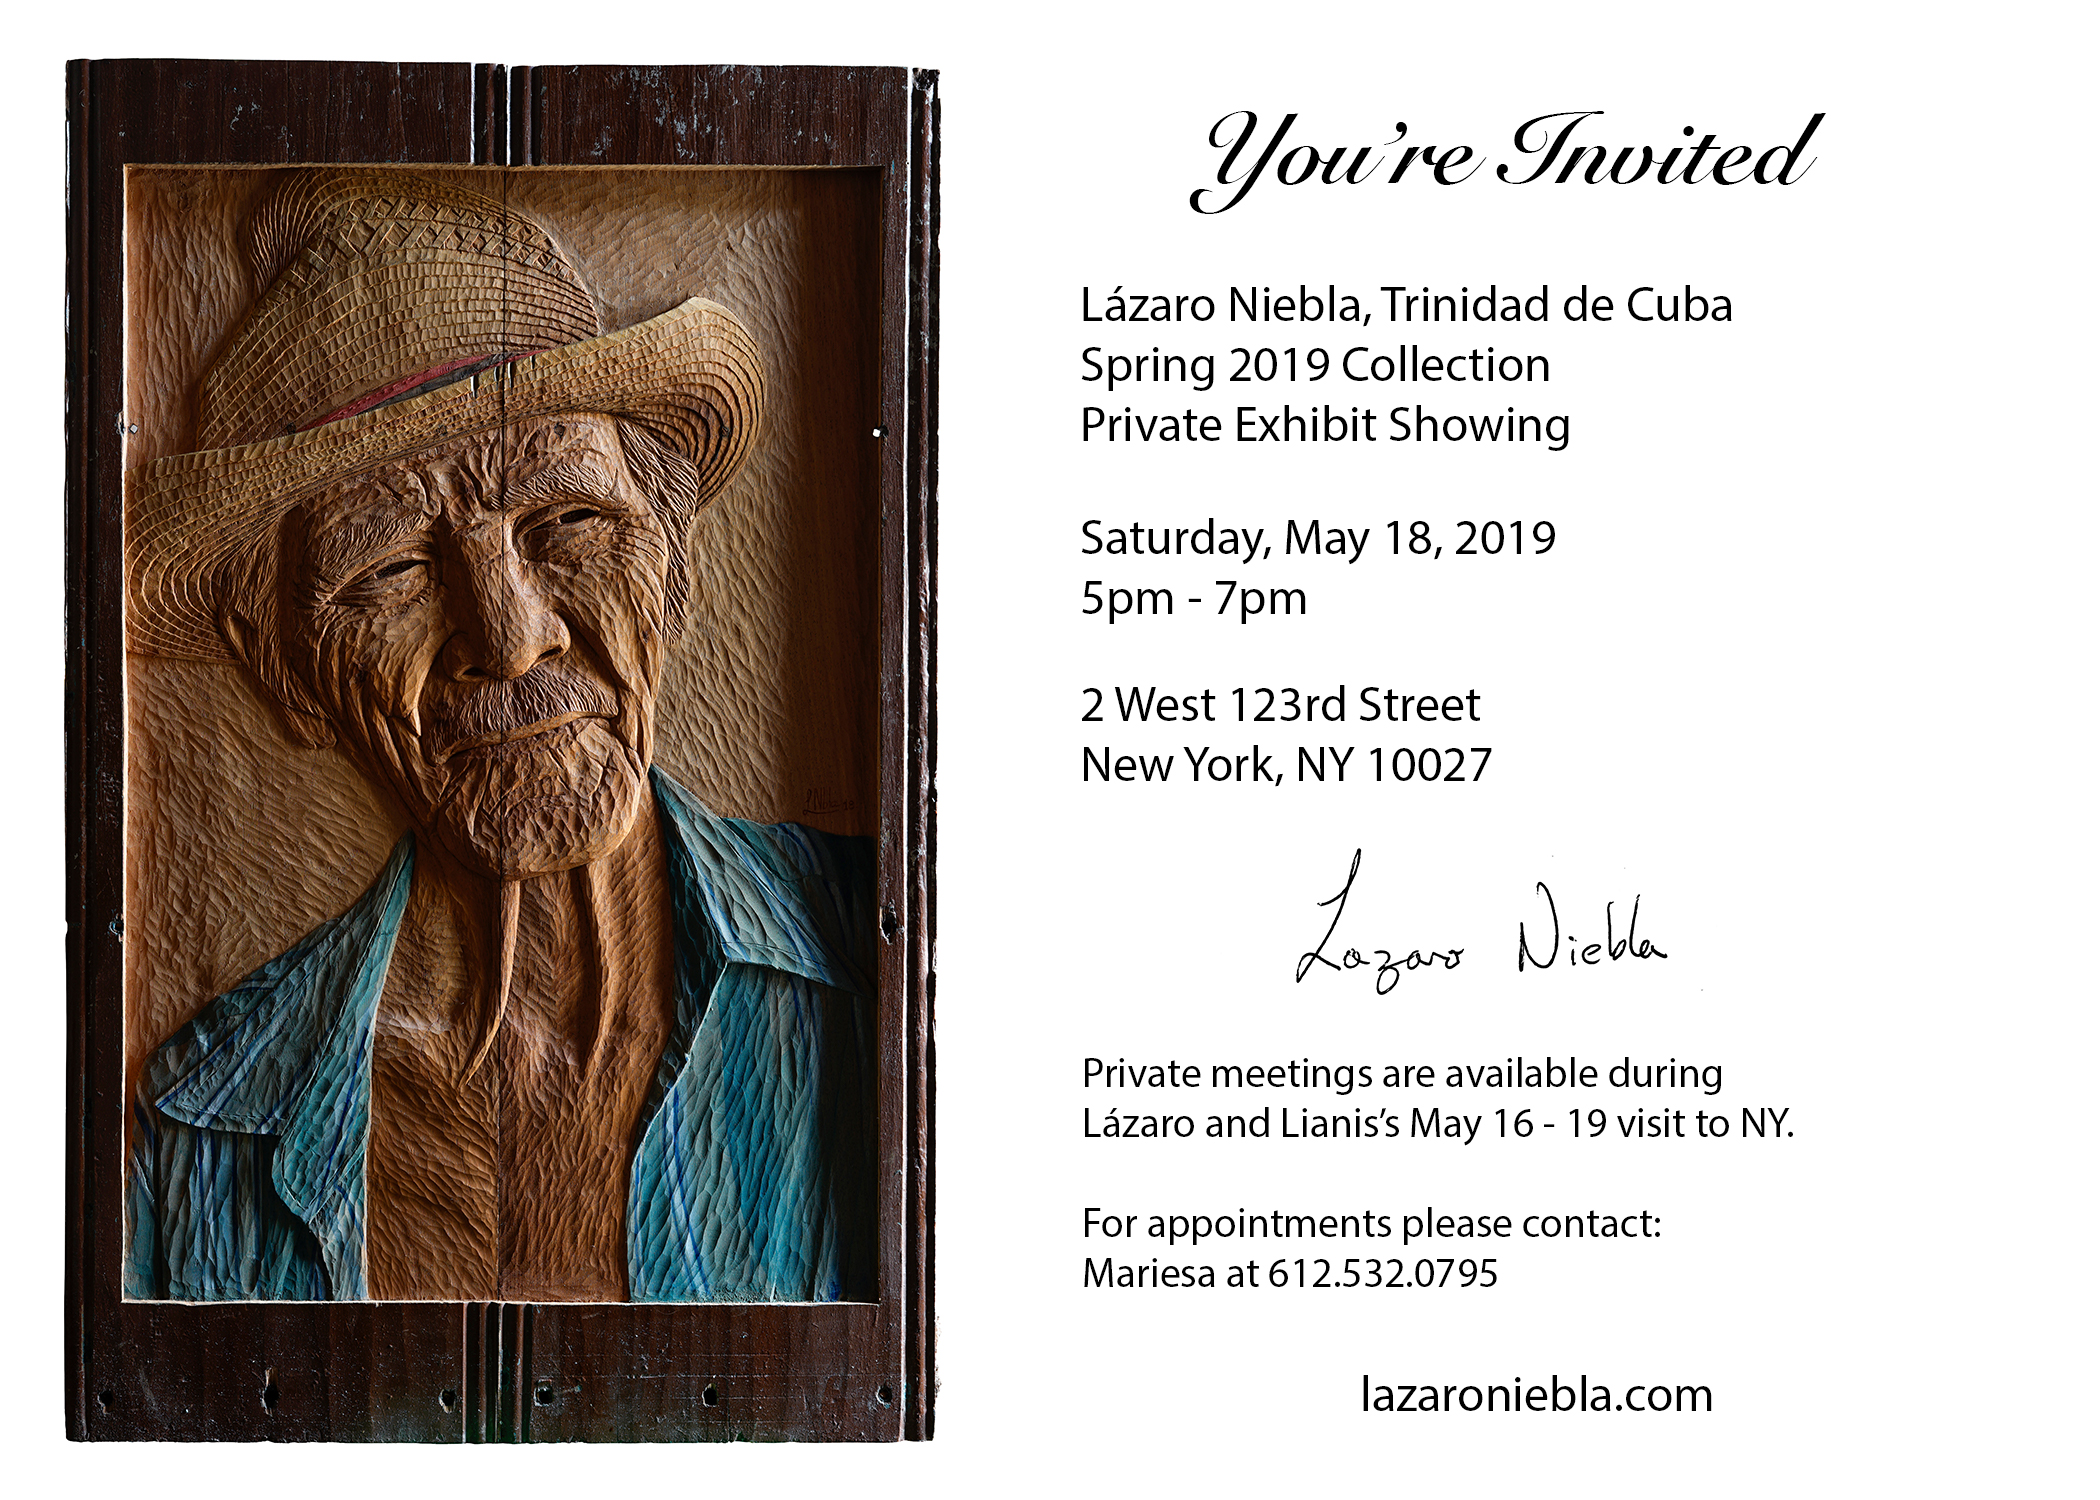 Lazaro Niebla May 18 Invite.jpg